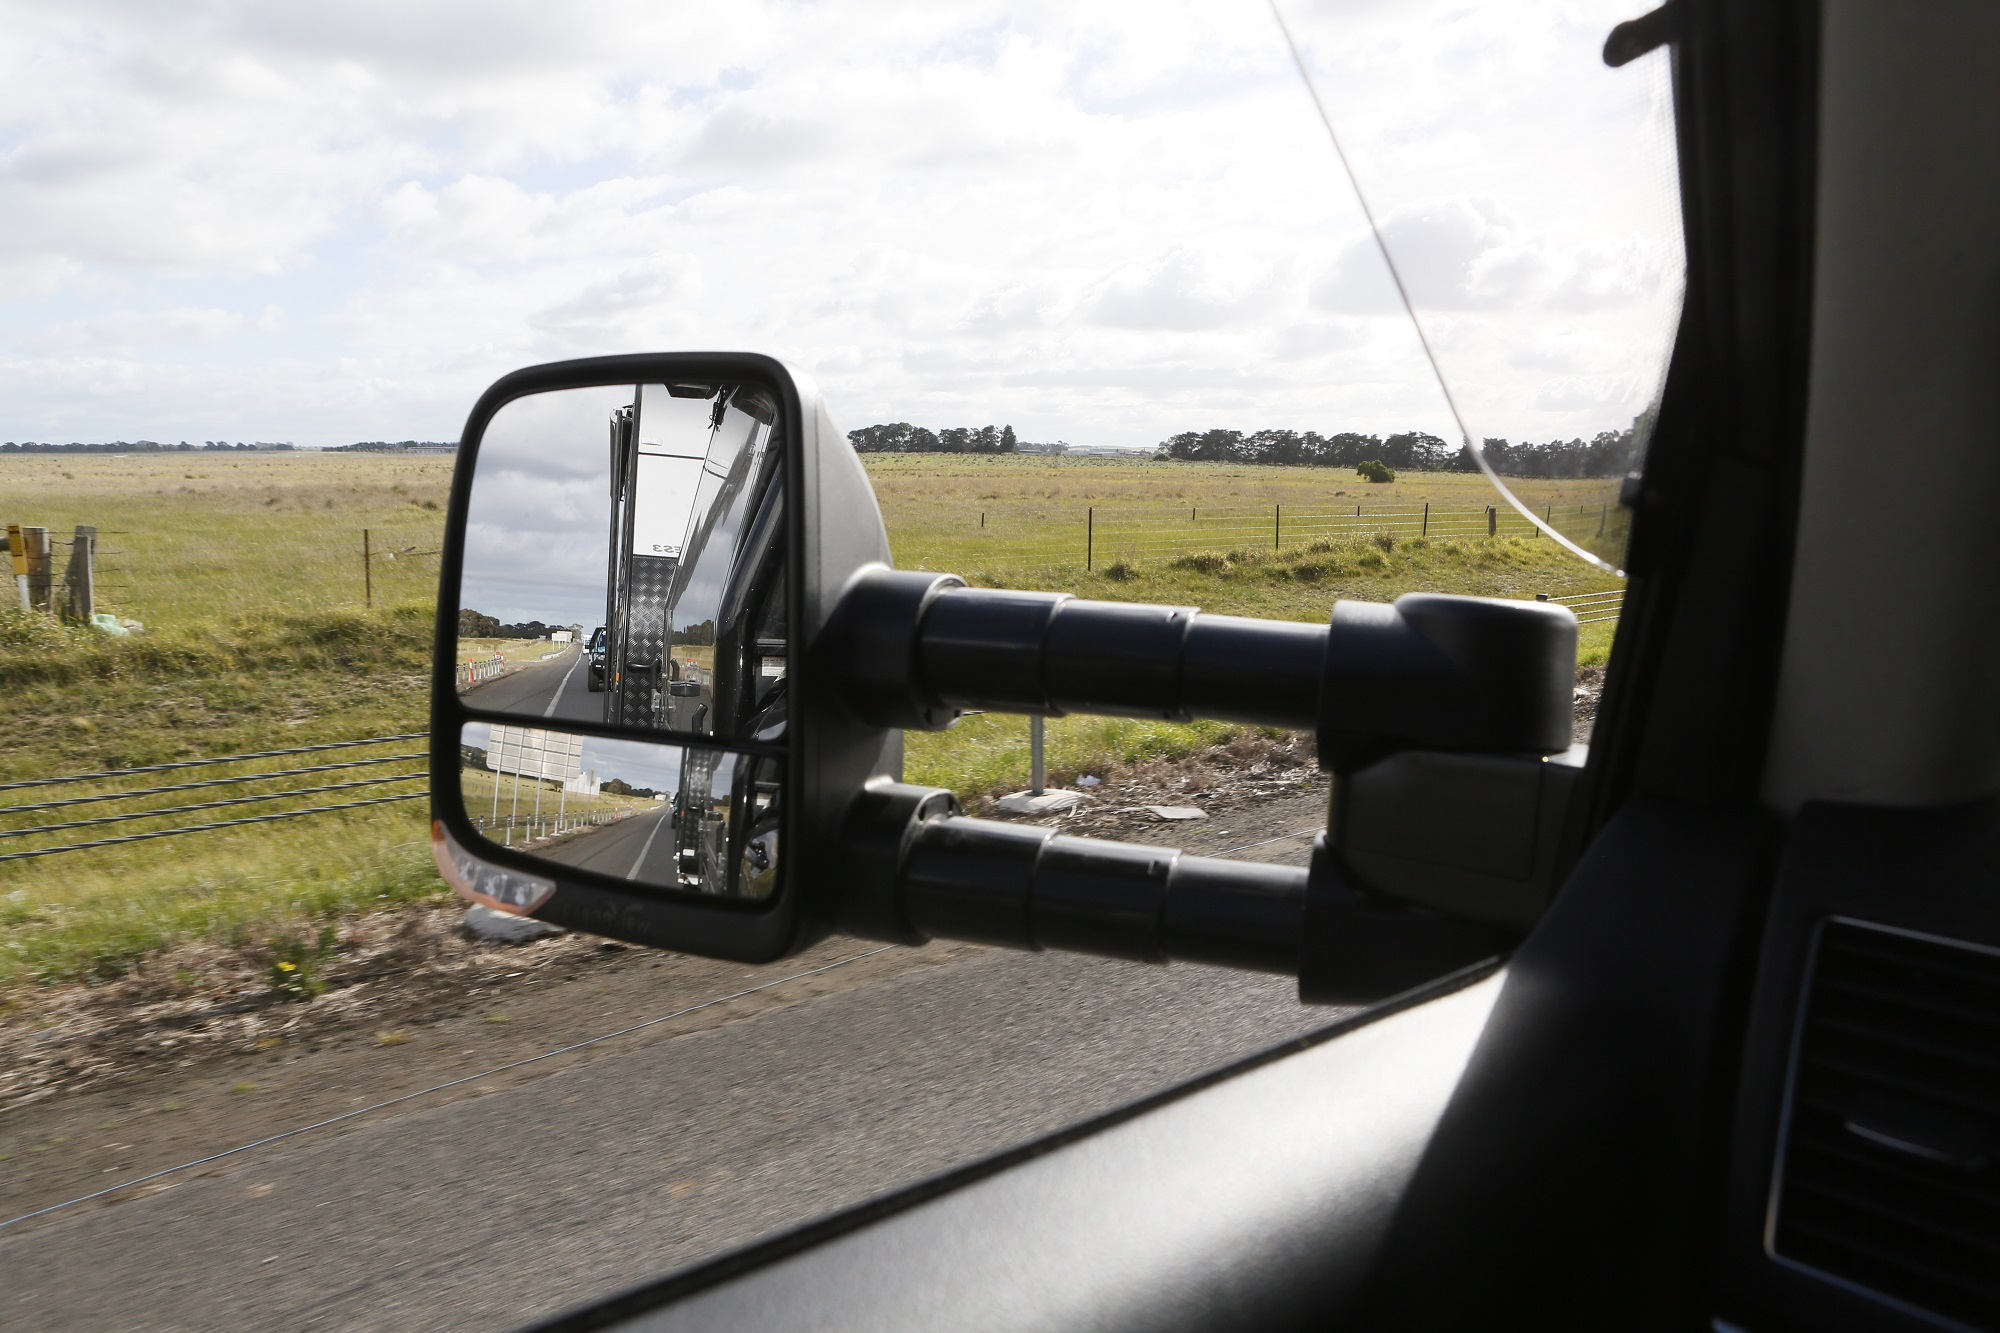 Clearview releases its Next Gen extendable towing mirrors